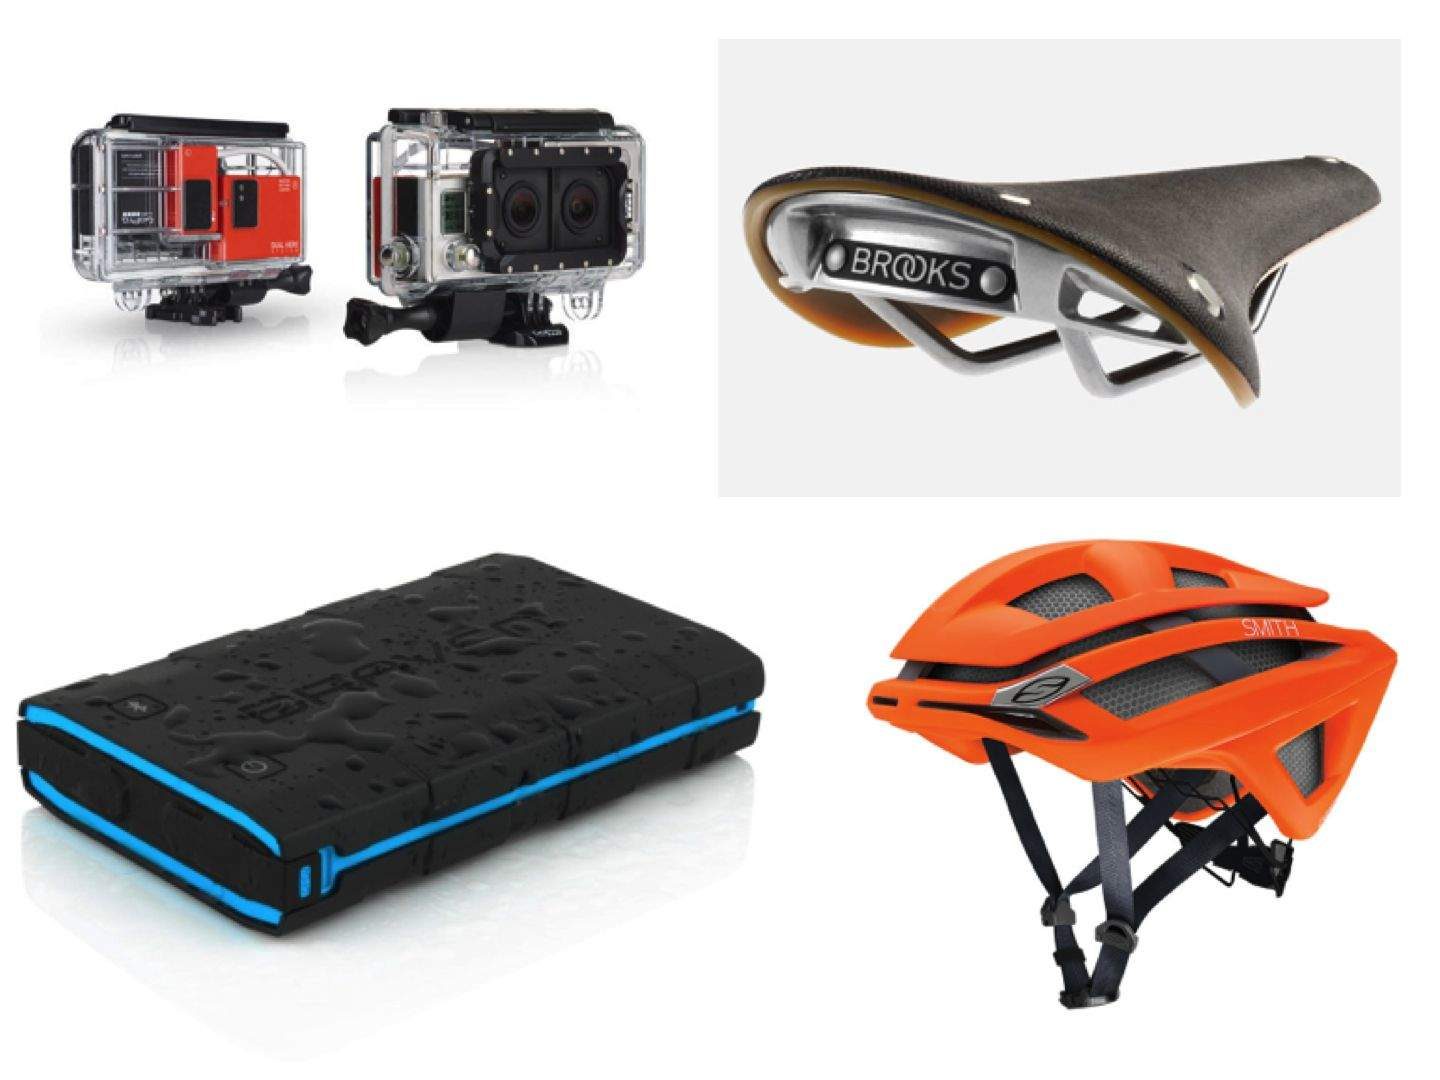 Cameras, chargers, cycle helmets and saddles. Yes, it's another edition of Cult of Mac's Gadget Watch, and again we're heading outdoors to snap photos and enjoy the sun. Take a look at this week's death-defying gear.